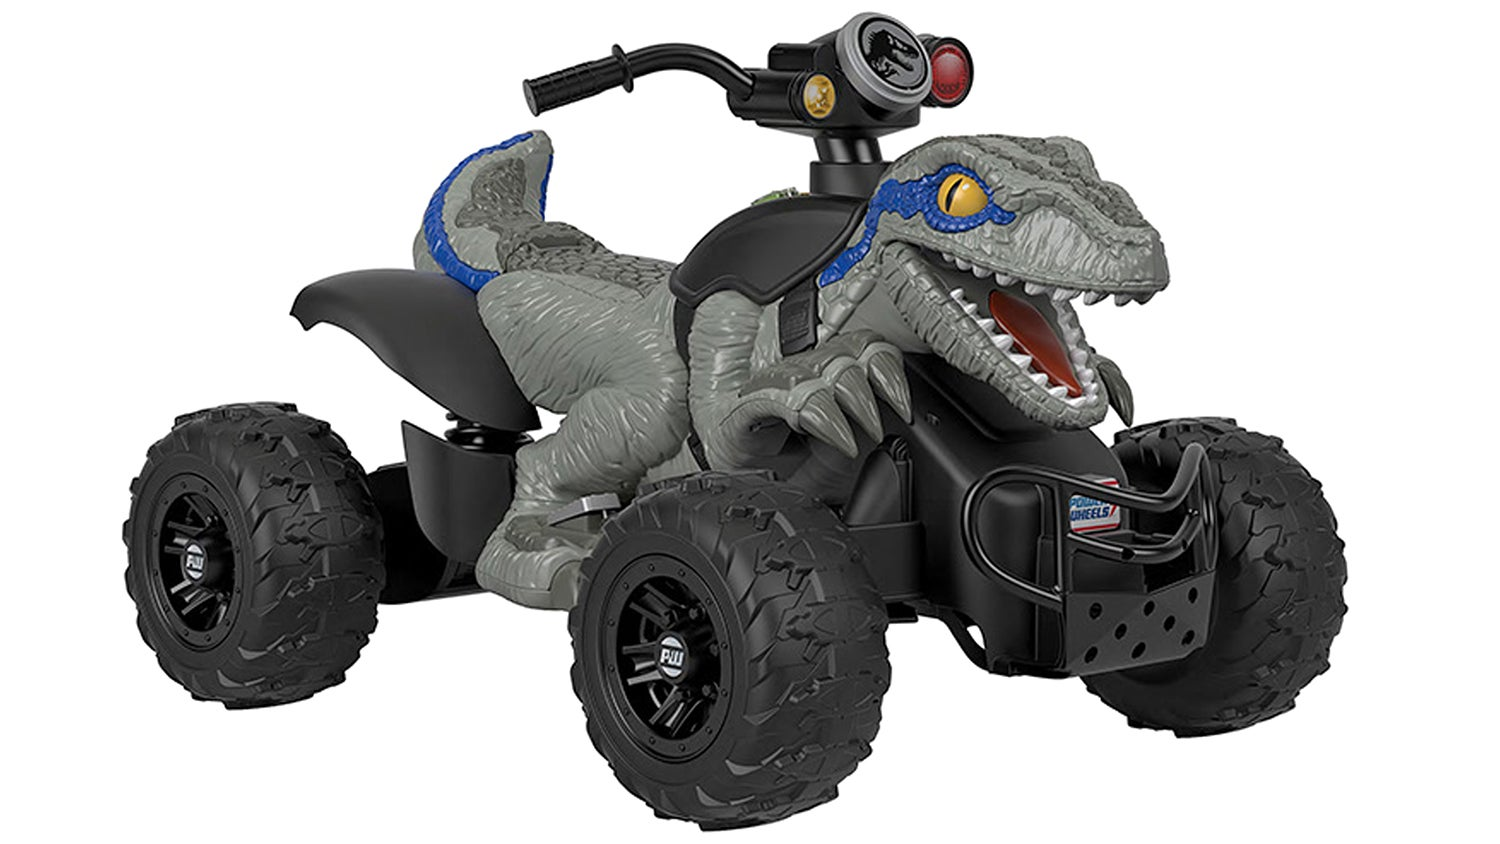 Your Kid Can Now Live Out My Dino-Riding Fantasy